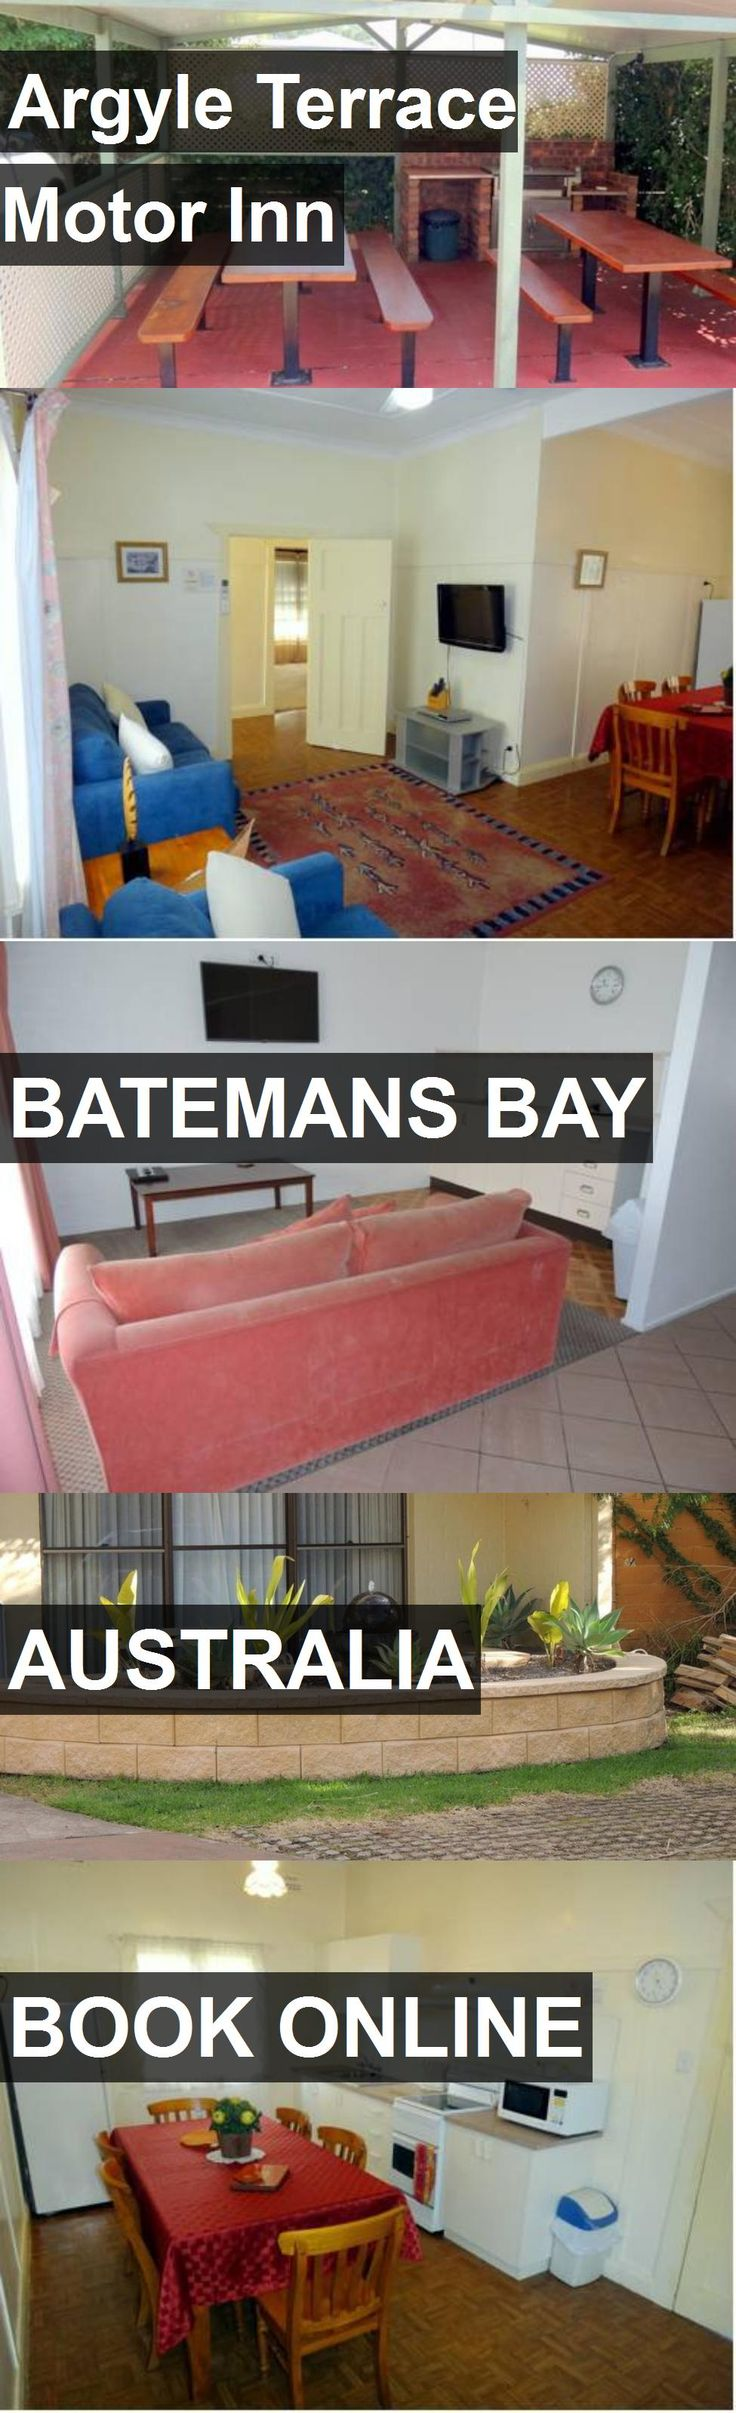 Hotel Argyle Terrace Motor Inn in Batemans Bay, Australia. For more information, photos, reviews and best prices please follow the link. #Australia #BatemansBay #travel #vacation #hotel